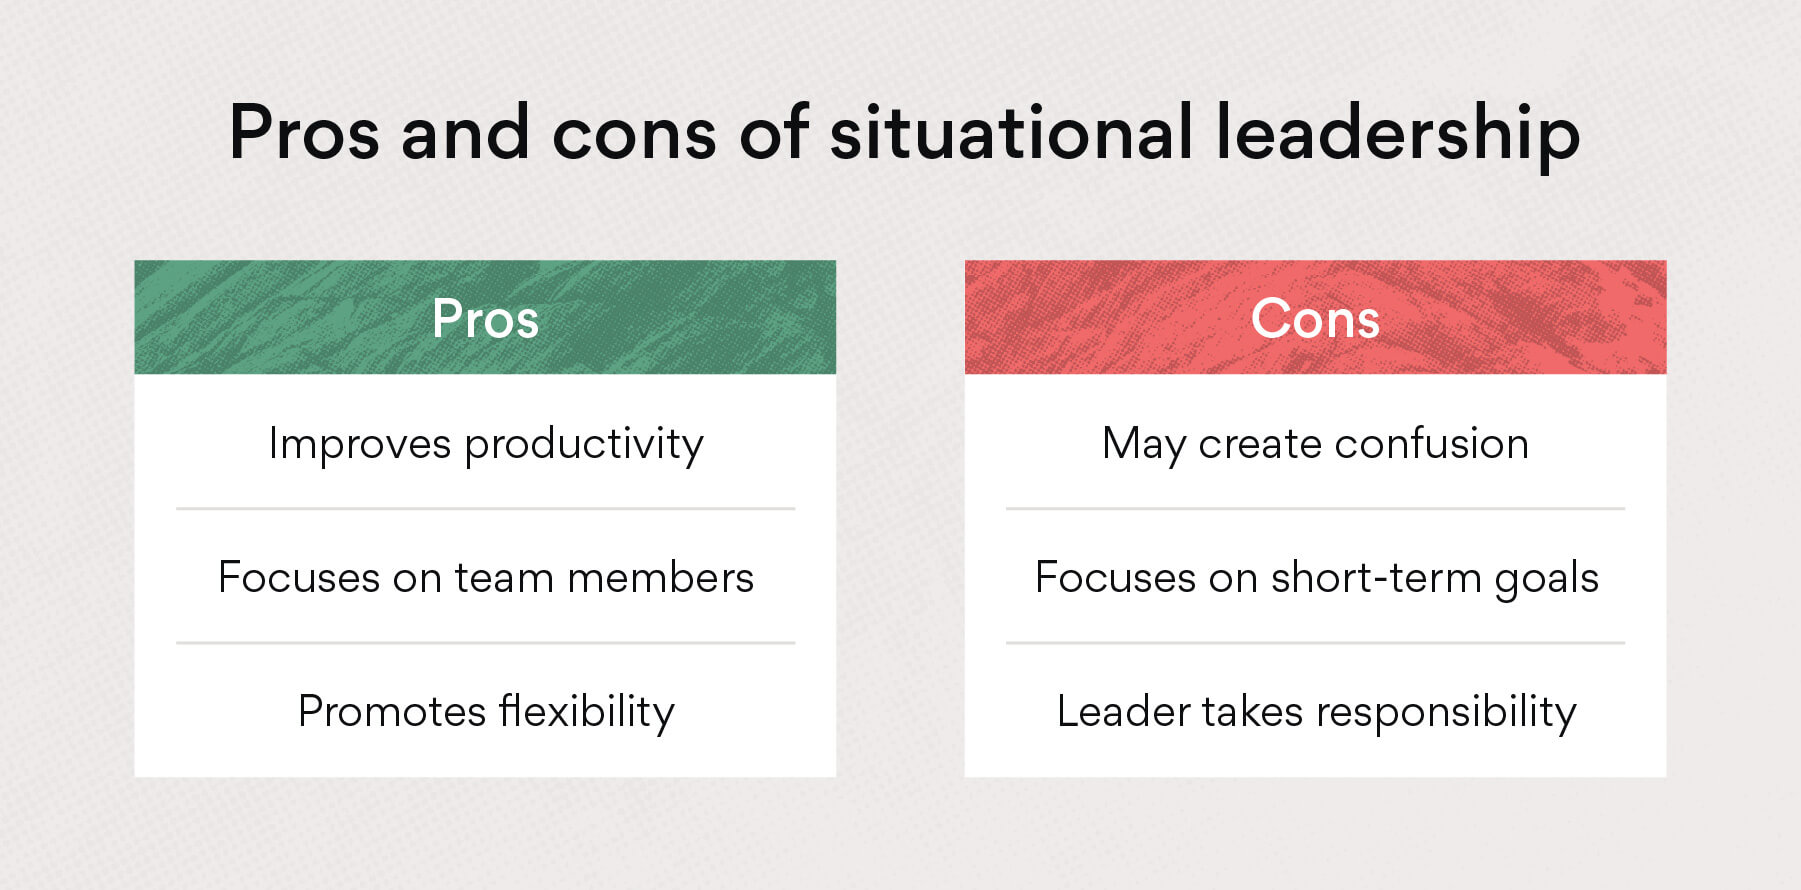 Pros and cons of situational leadership